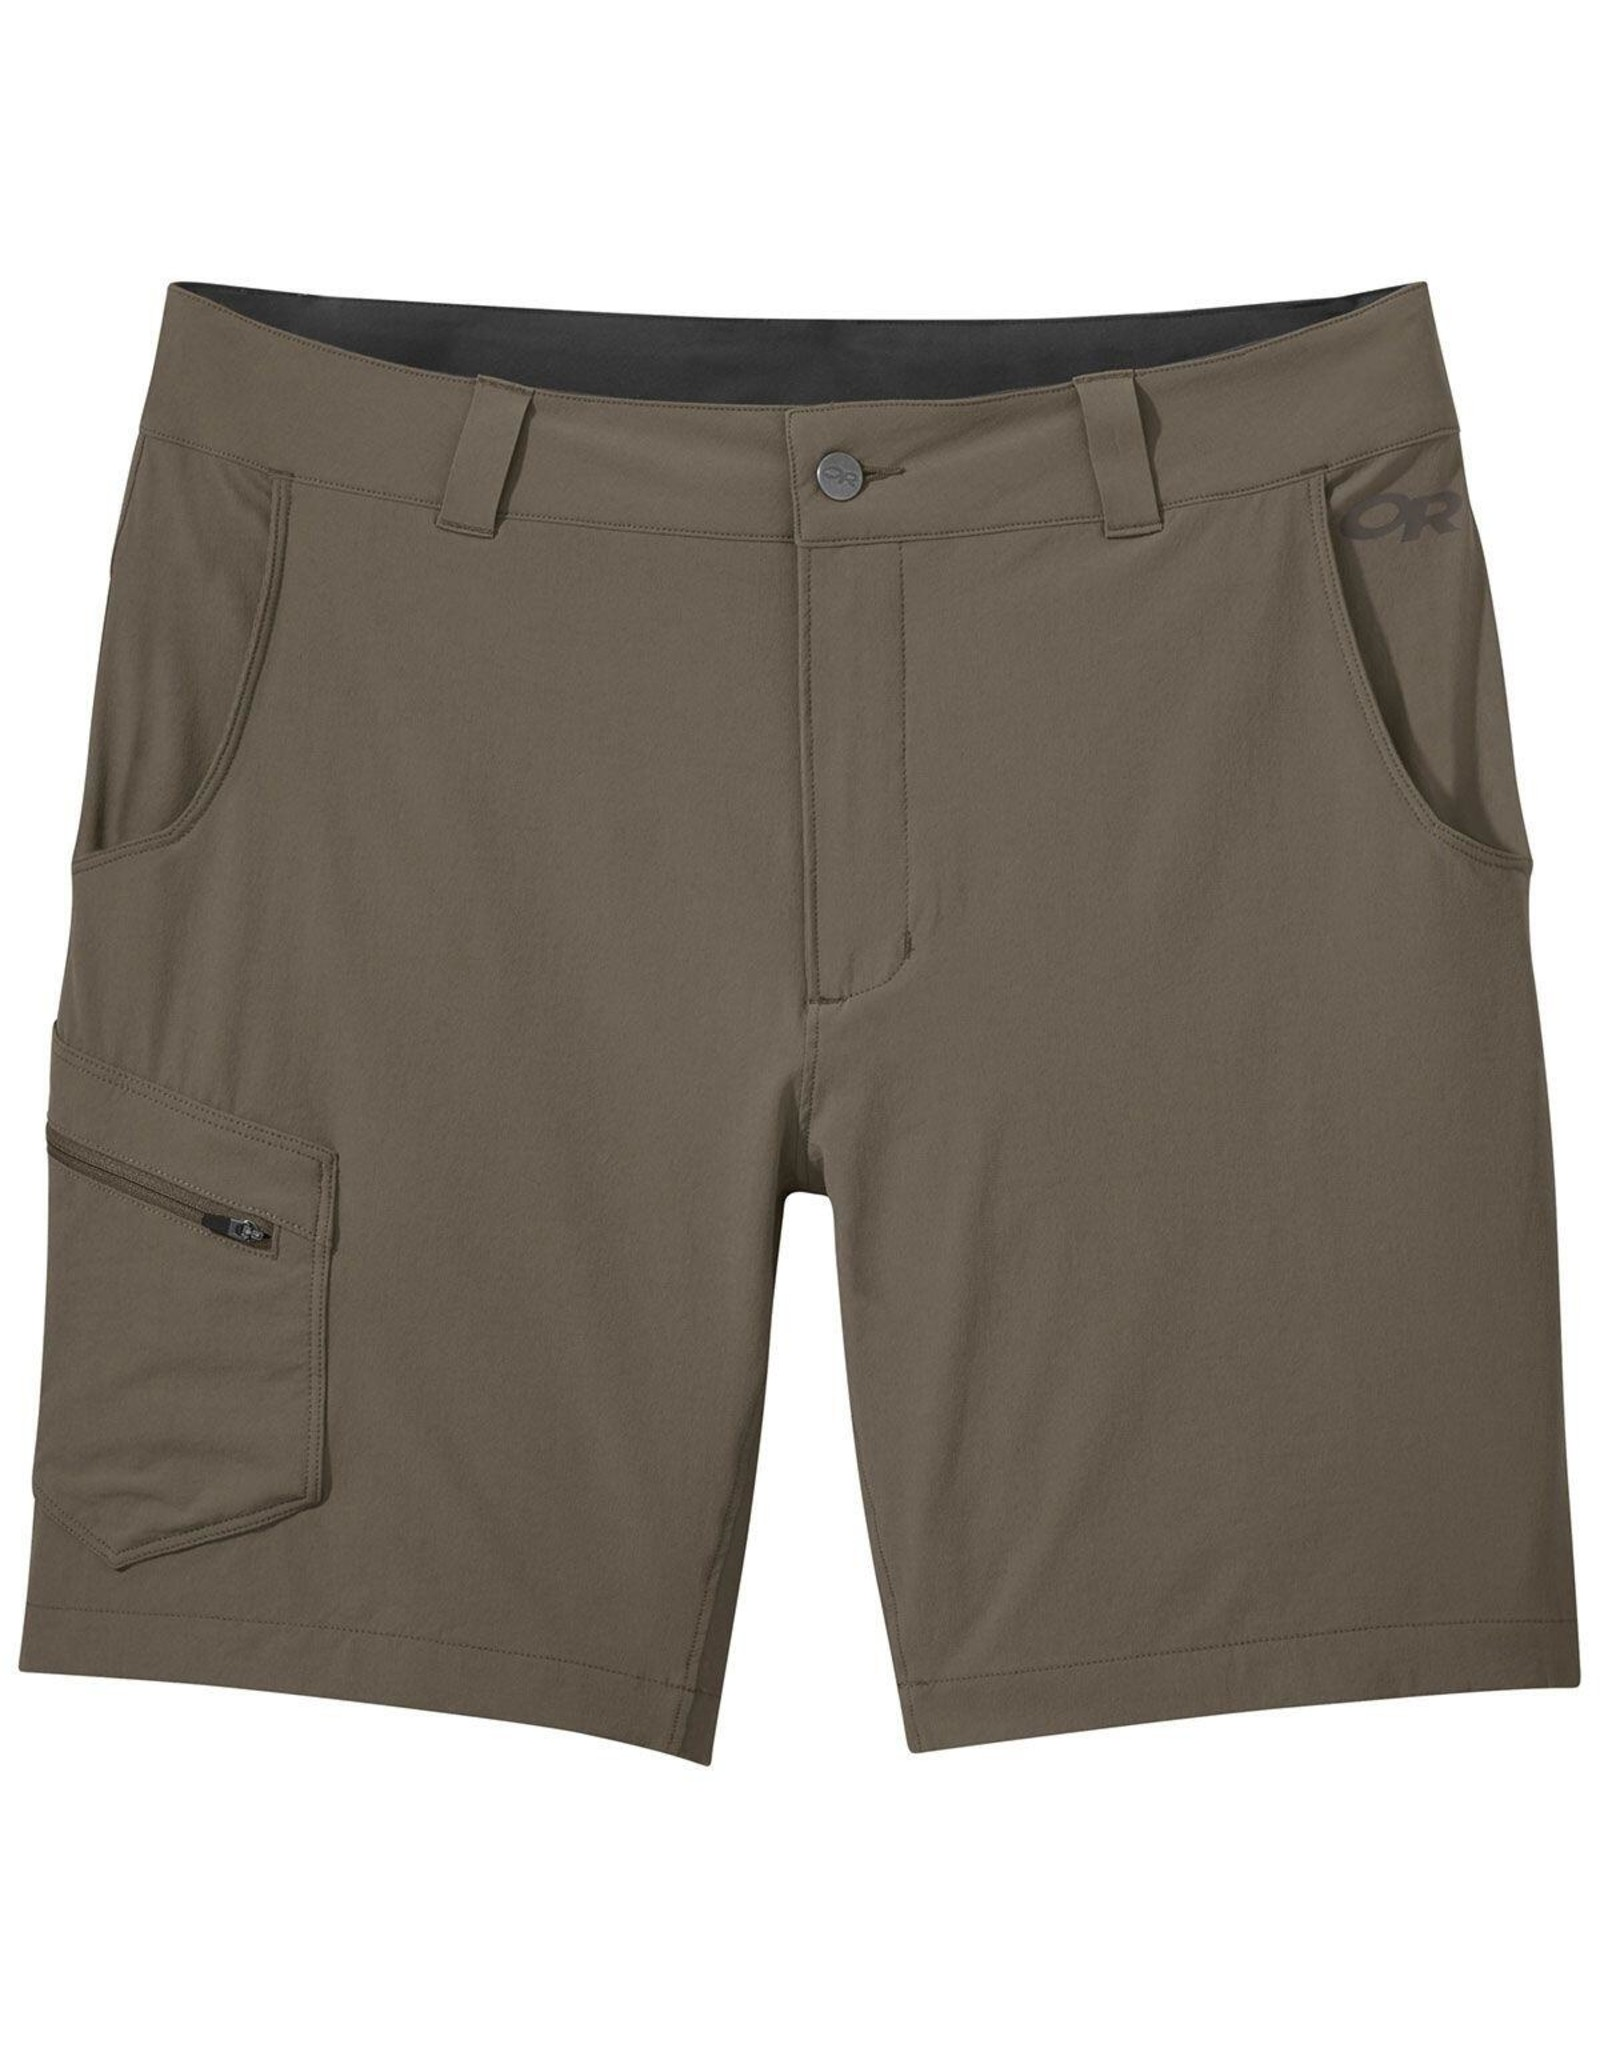 "OUTDOOR RESEARCH MEN'S FERROSI SHORTS 10"" INSEAM"